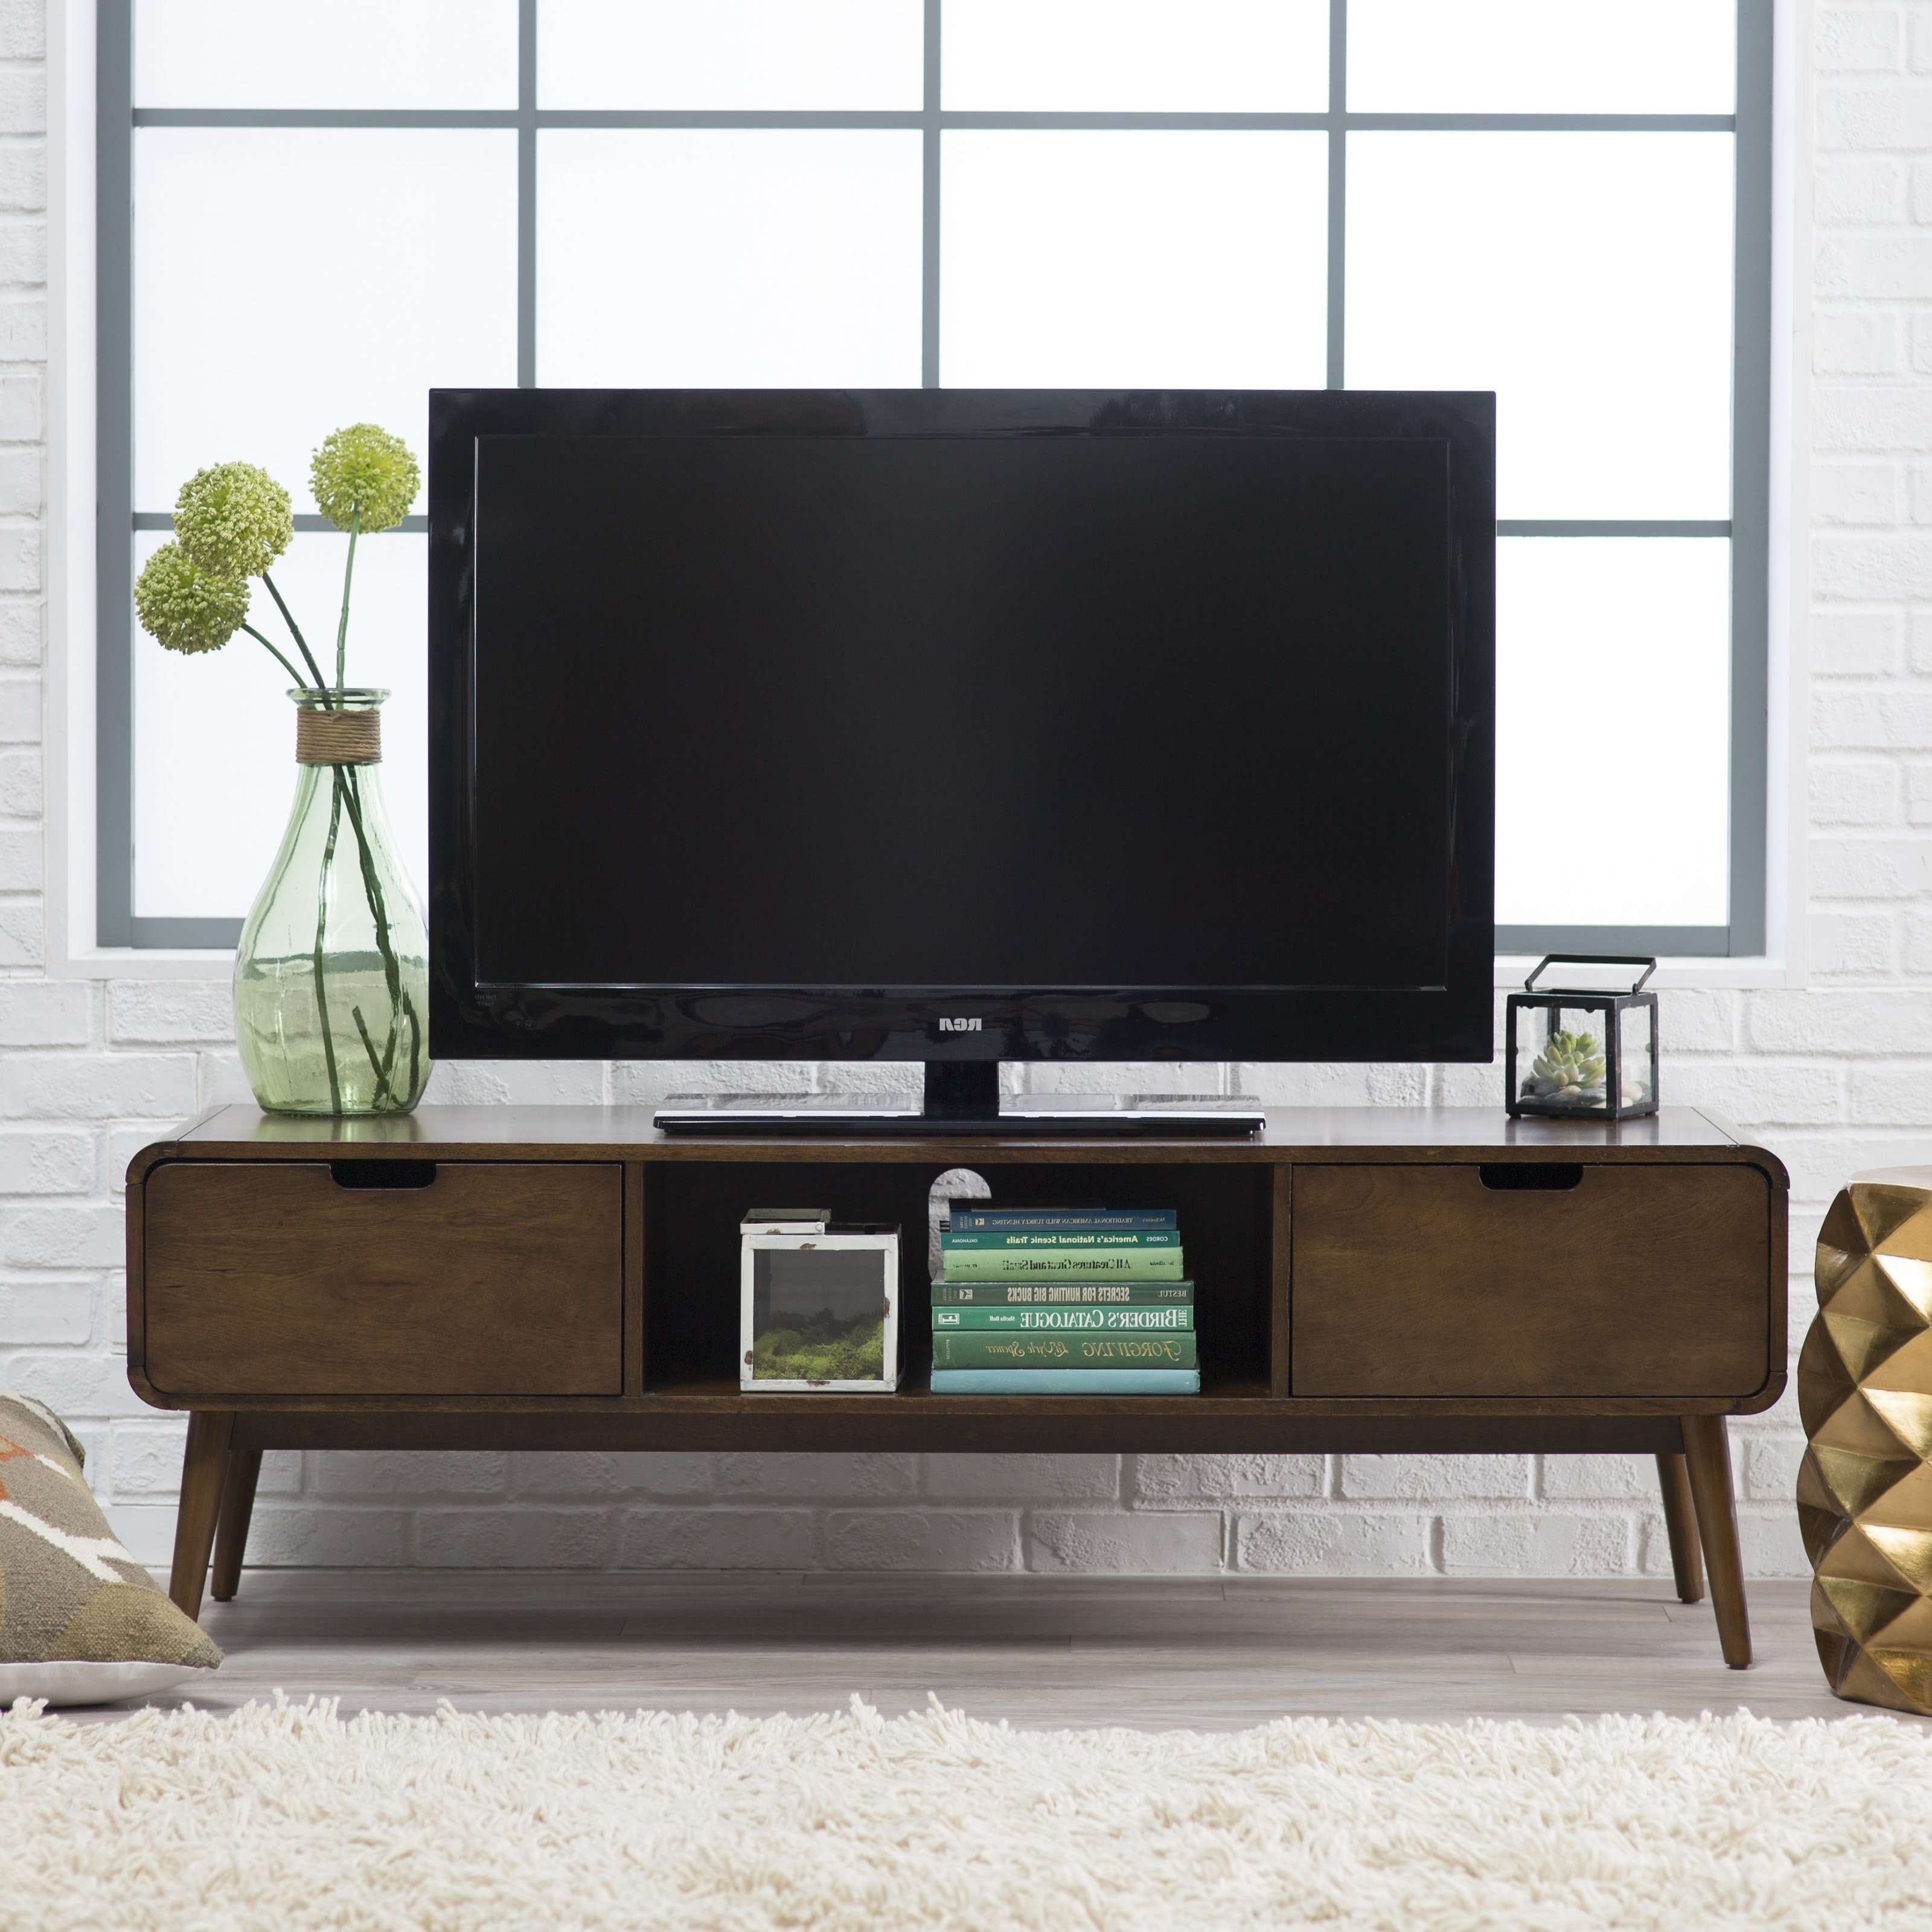 Tv : Satisfactory Modern Tv Cabinets For Flat Screens Uk Unique Regarding Contemporary Tv Cabinets For Flat Screens (View 18 of 20)